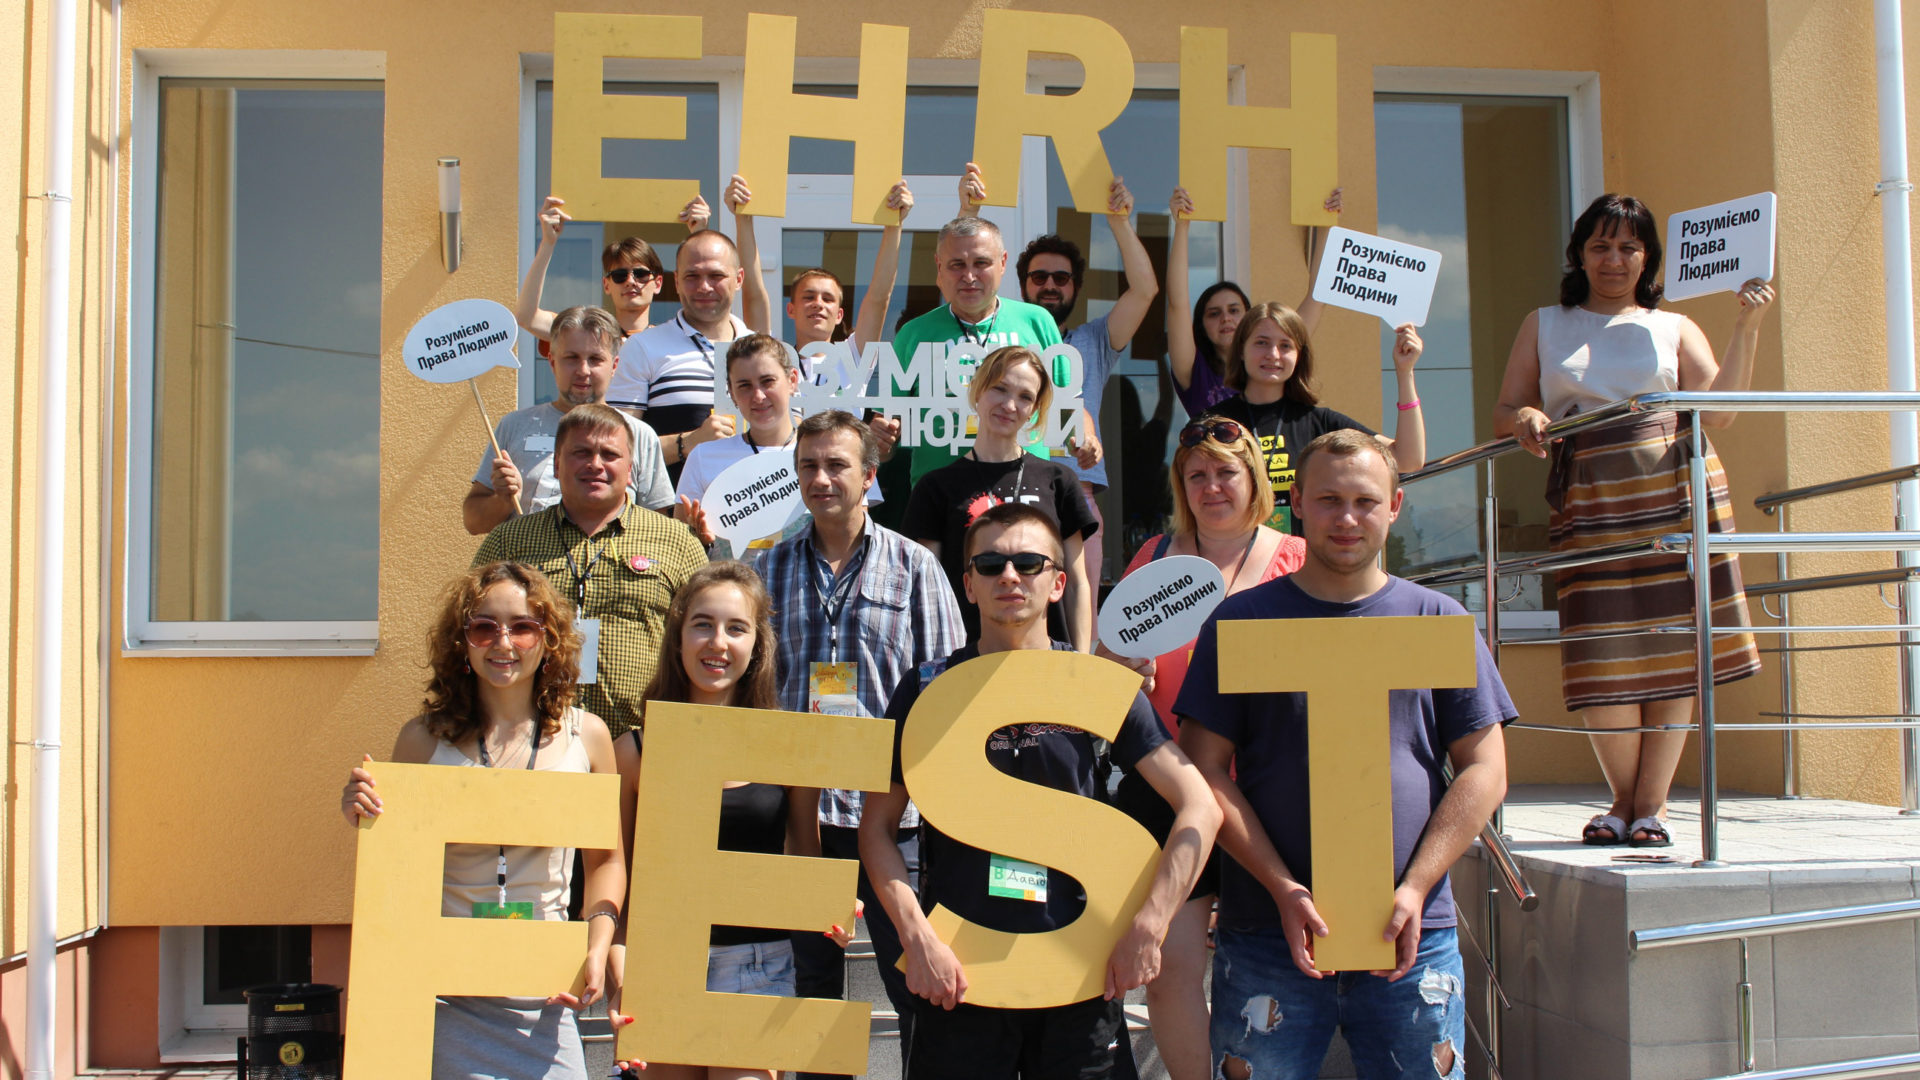 Educational Human Rights Fest in Chernihiv, 2018